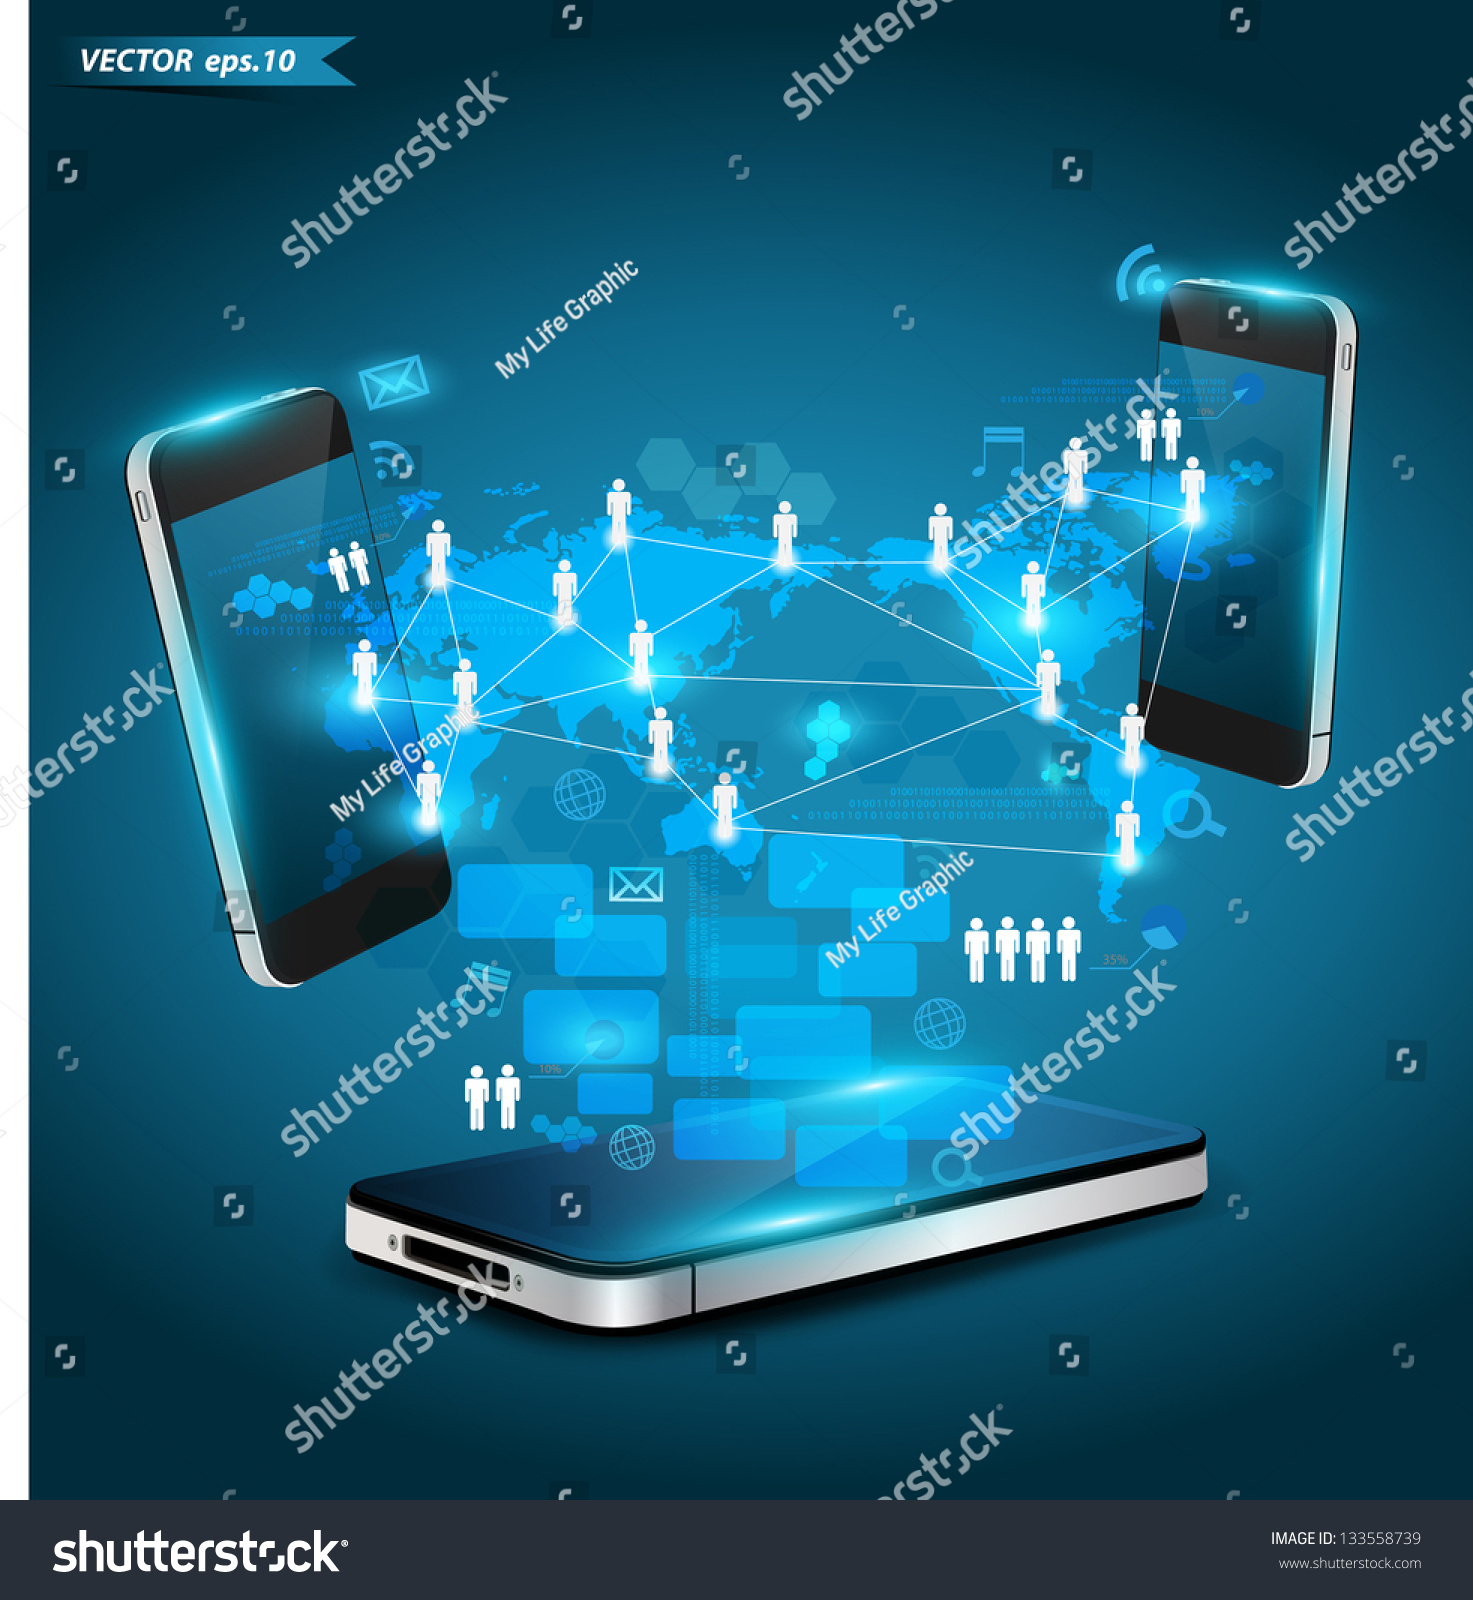 Mobile Phones Technology Business Concept Creative Stock